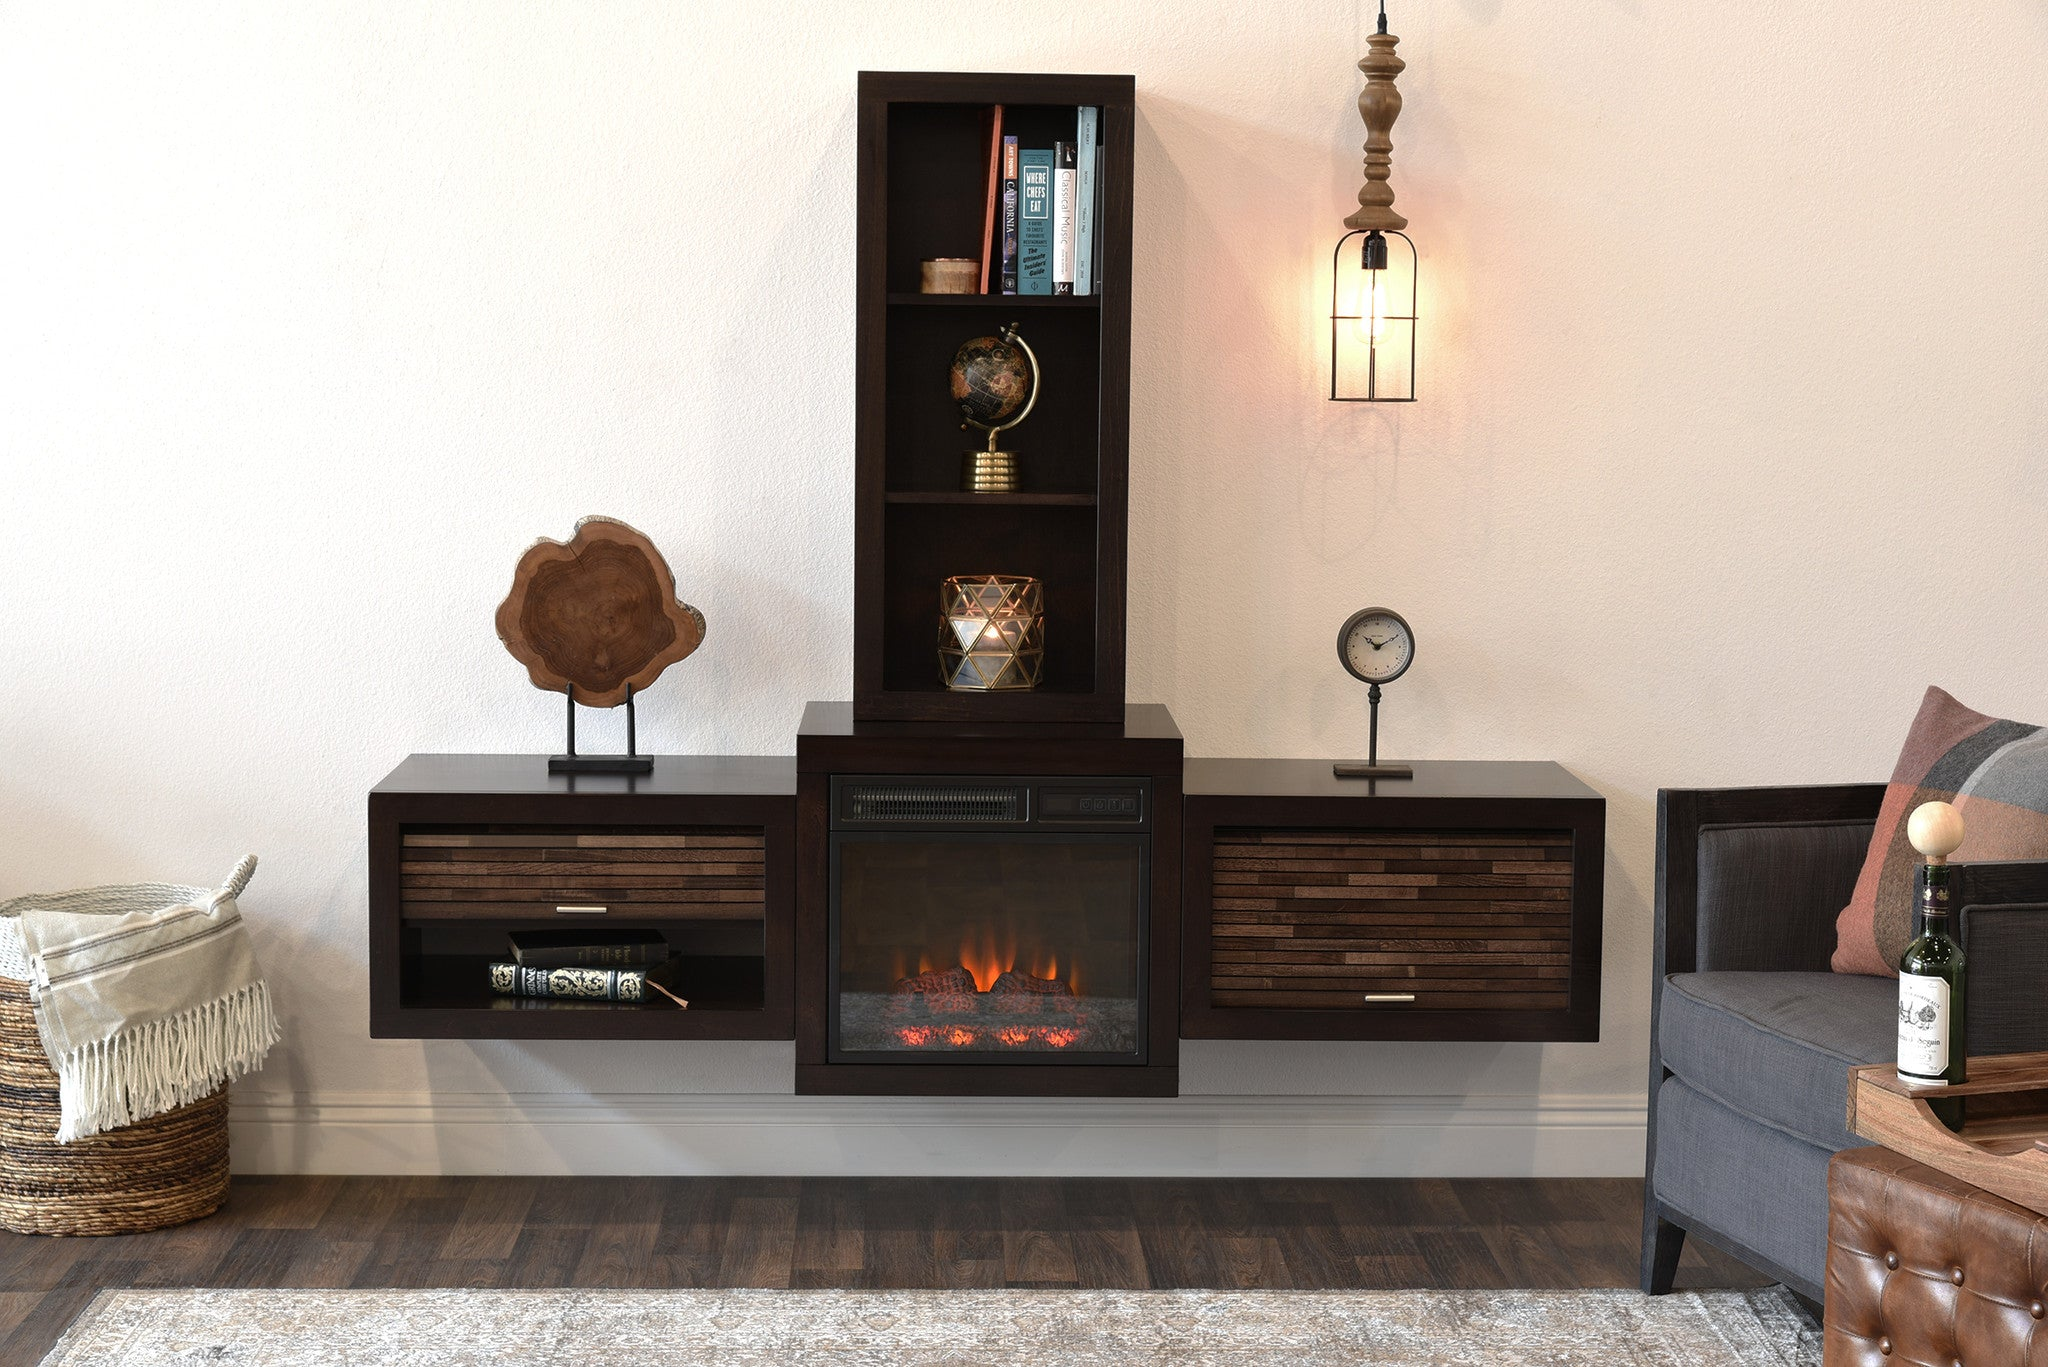 Floating Wall Mount Media Console With Fireplace And